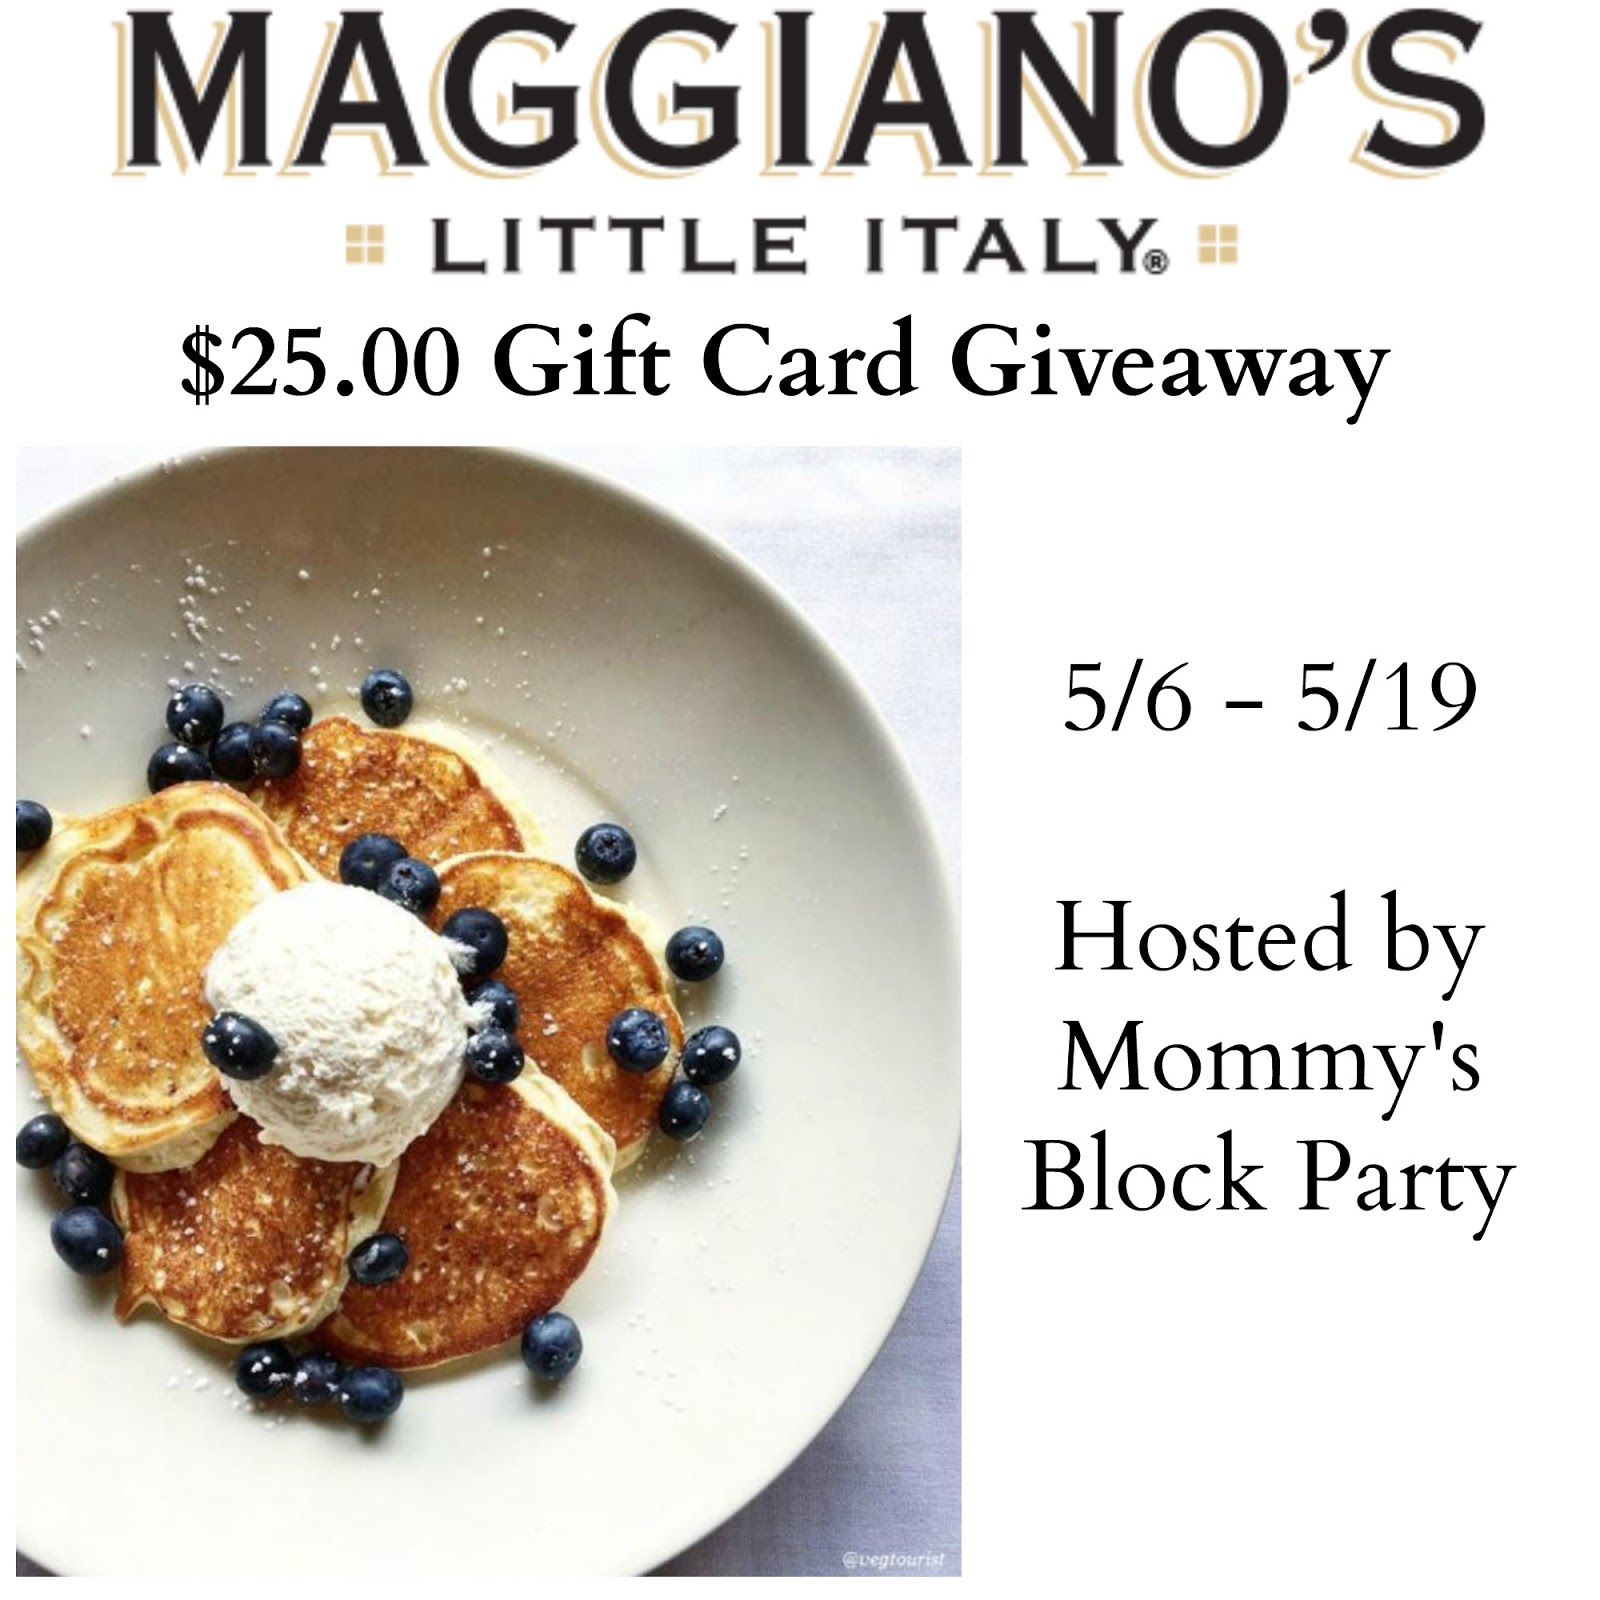 Mommy's Block Party: Brunch is Back Just in Time for Mother's Day ...